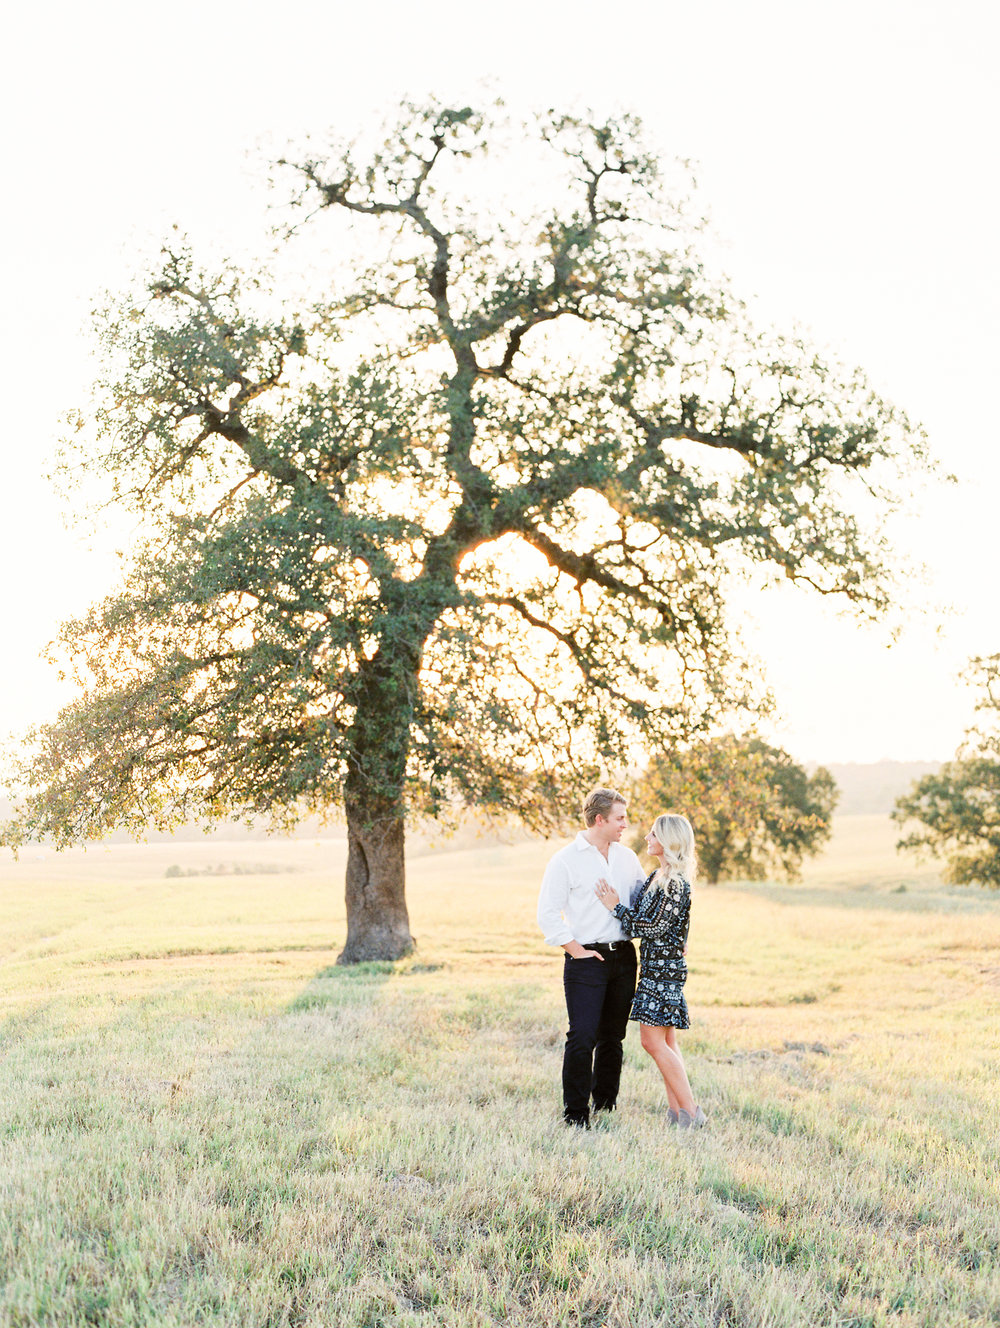 Lauren+John+Engaged+TX-8.jpg